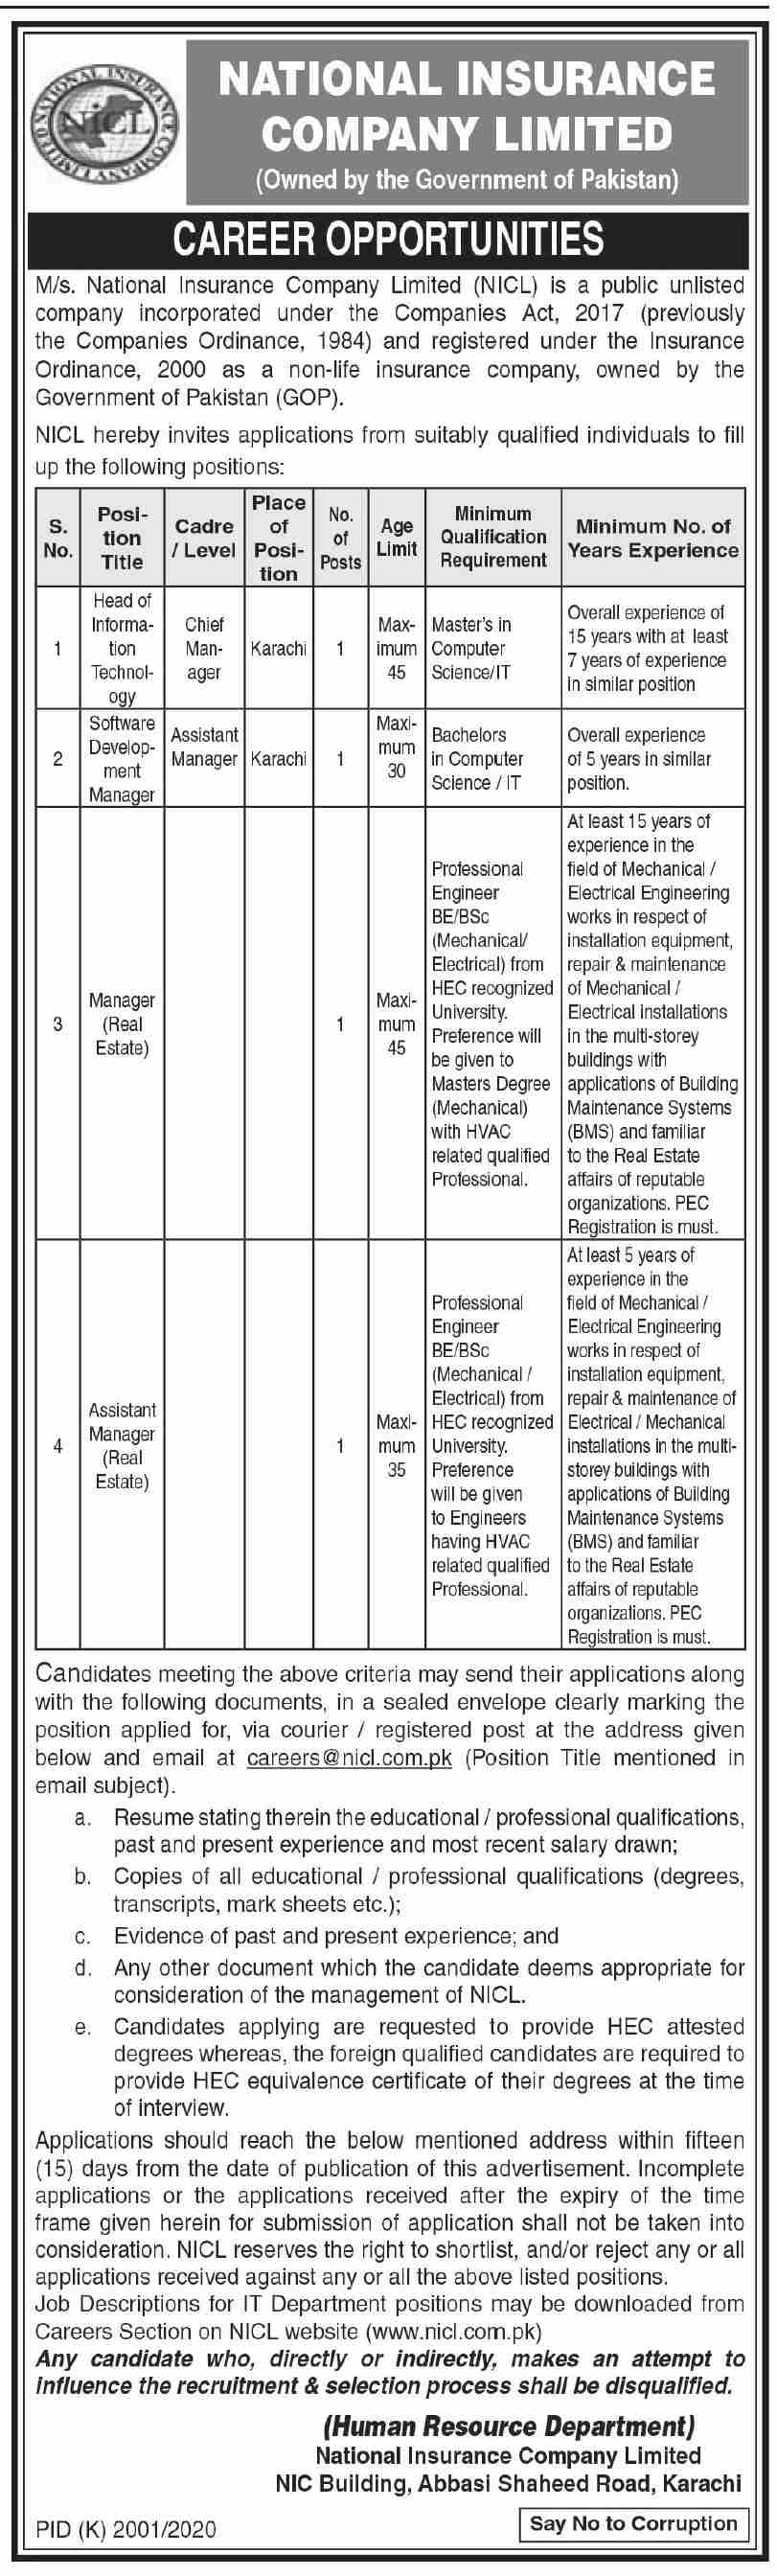 National Insurance Company Limited NICL Jobs 2021